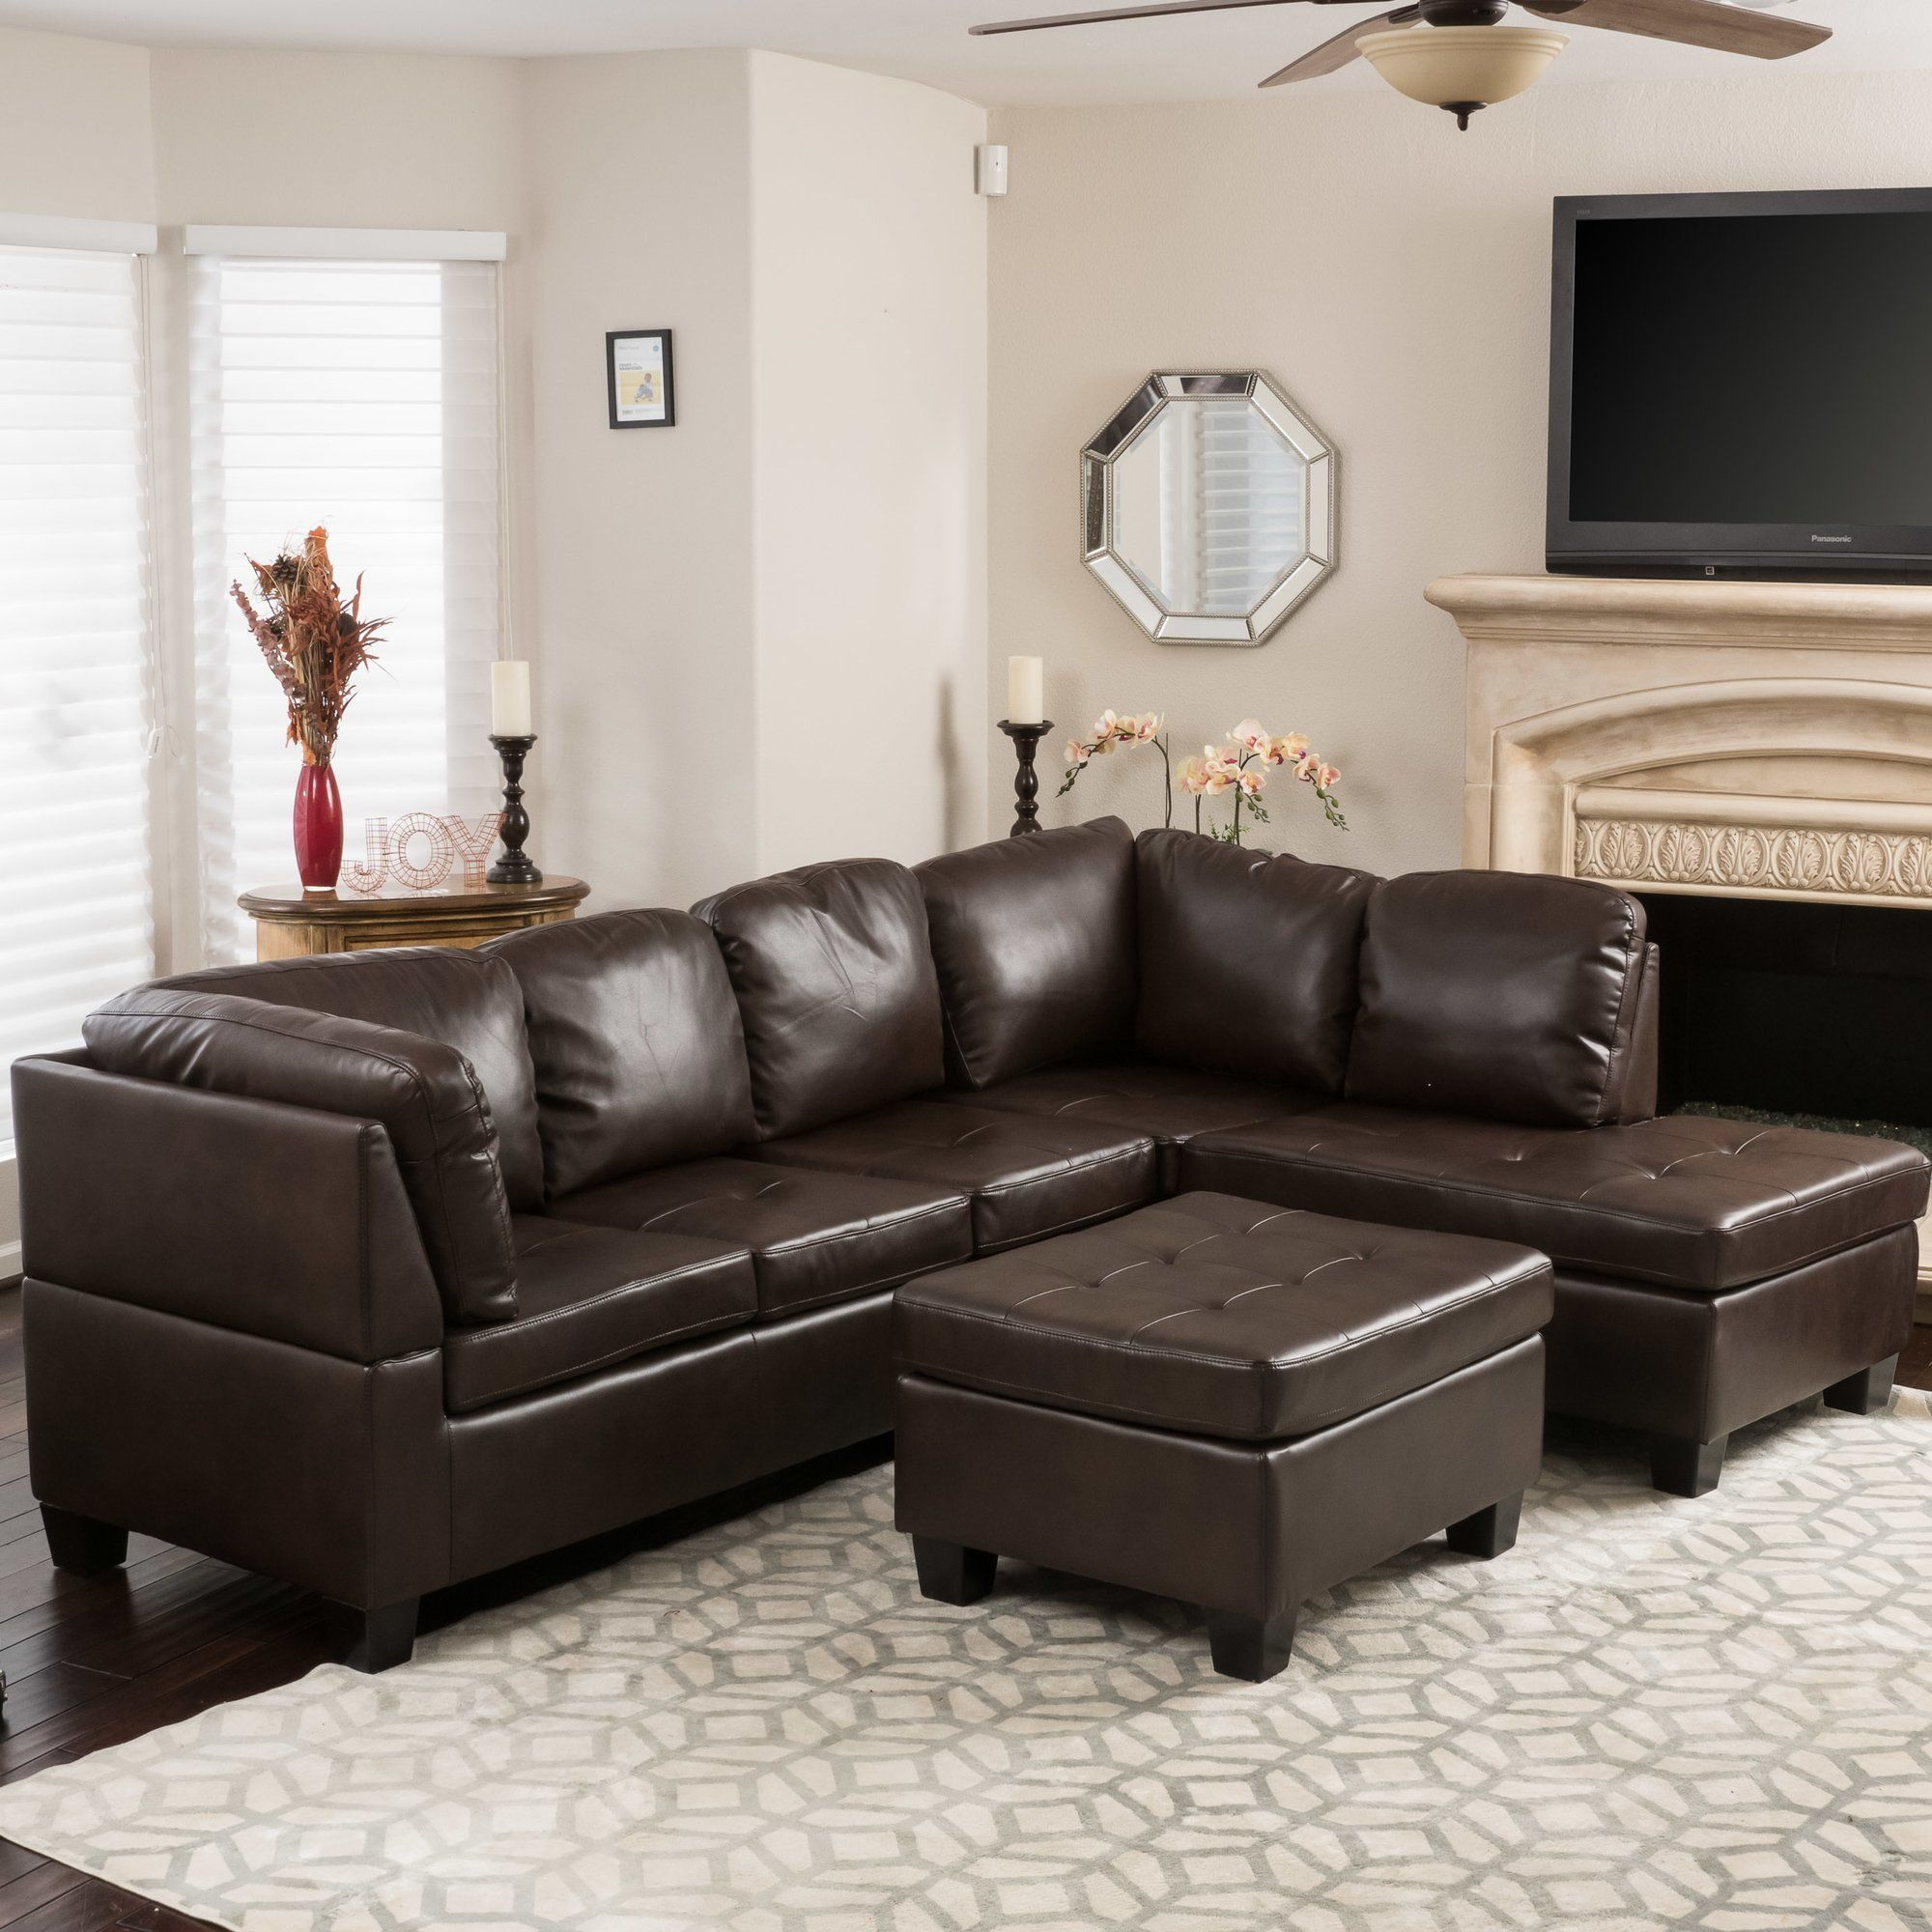 rectangular box leather wooden loveseats dark brown rug white appealing modern oval and carpet with couches table of sets set loveseat coffee couch warm